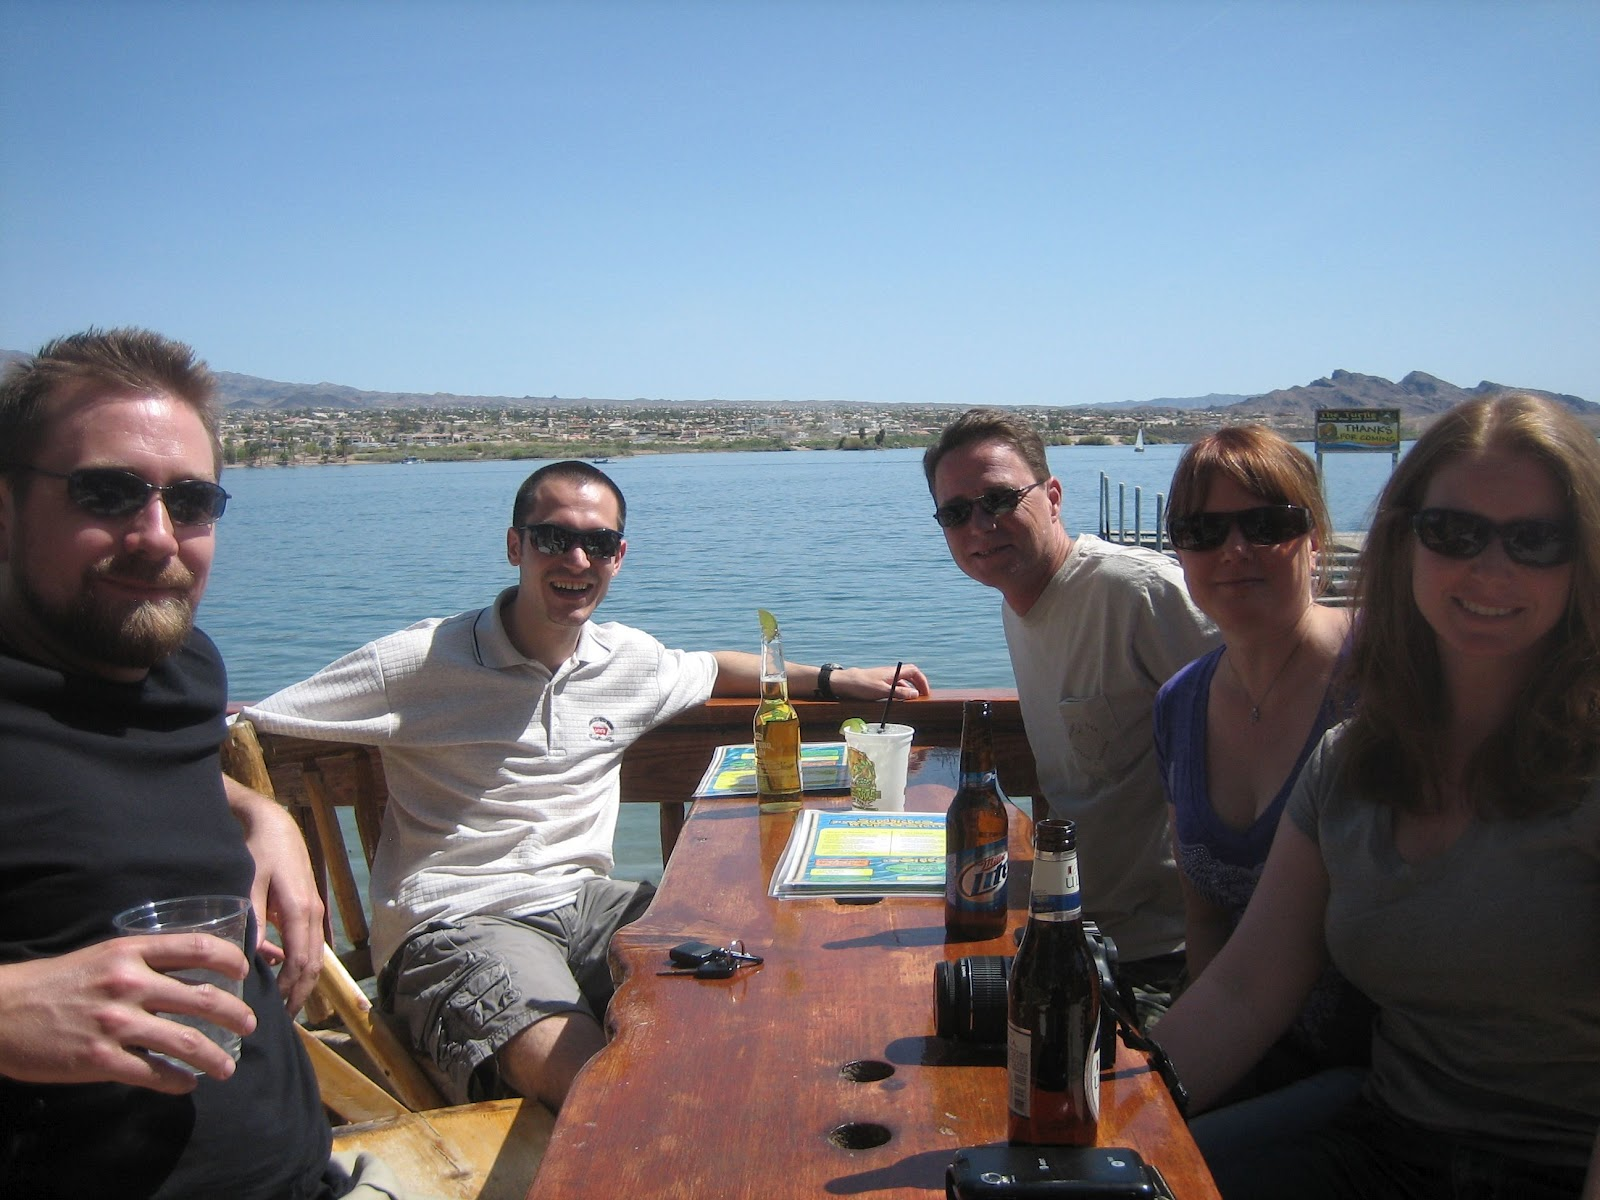 Life Made Beautiful Day Of Rest At Lake Havasu With -6768